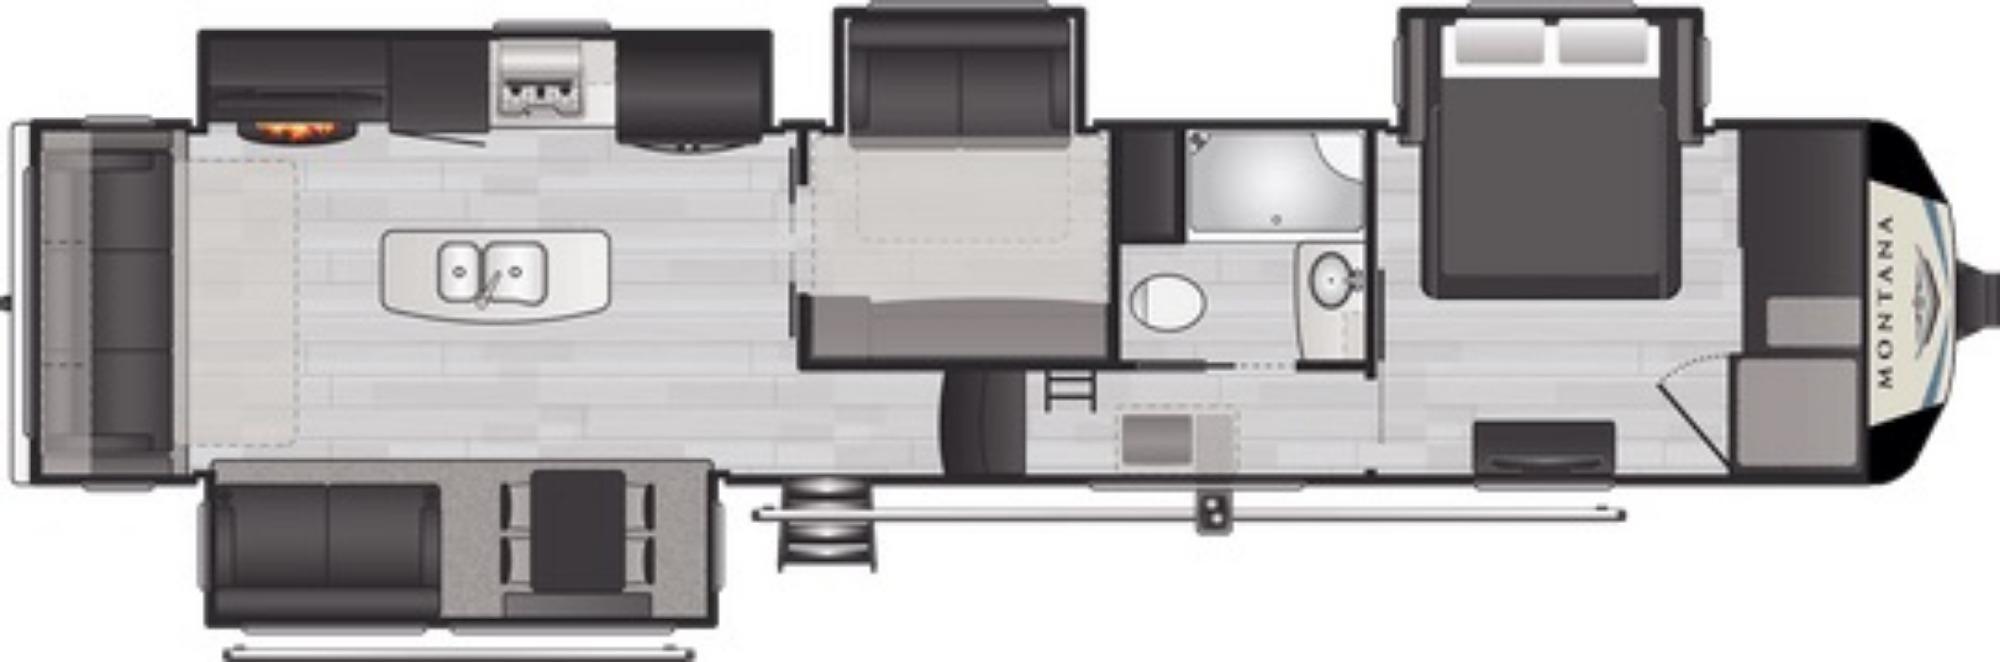 View Floor Plan for 2021 KEYSTONE MONTANA 3854BR